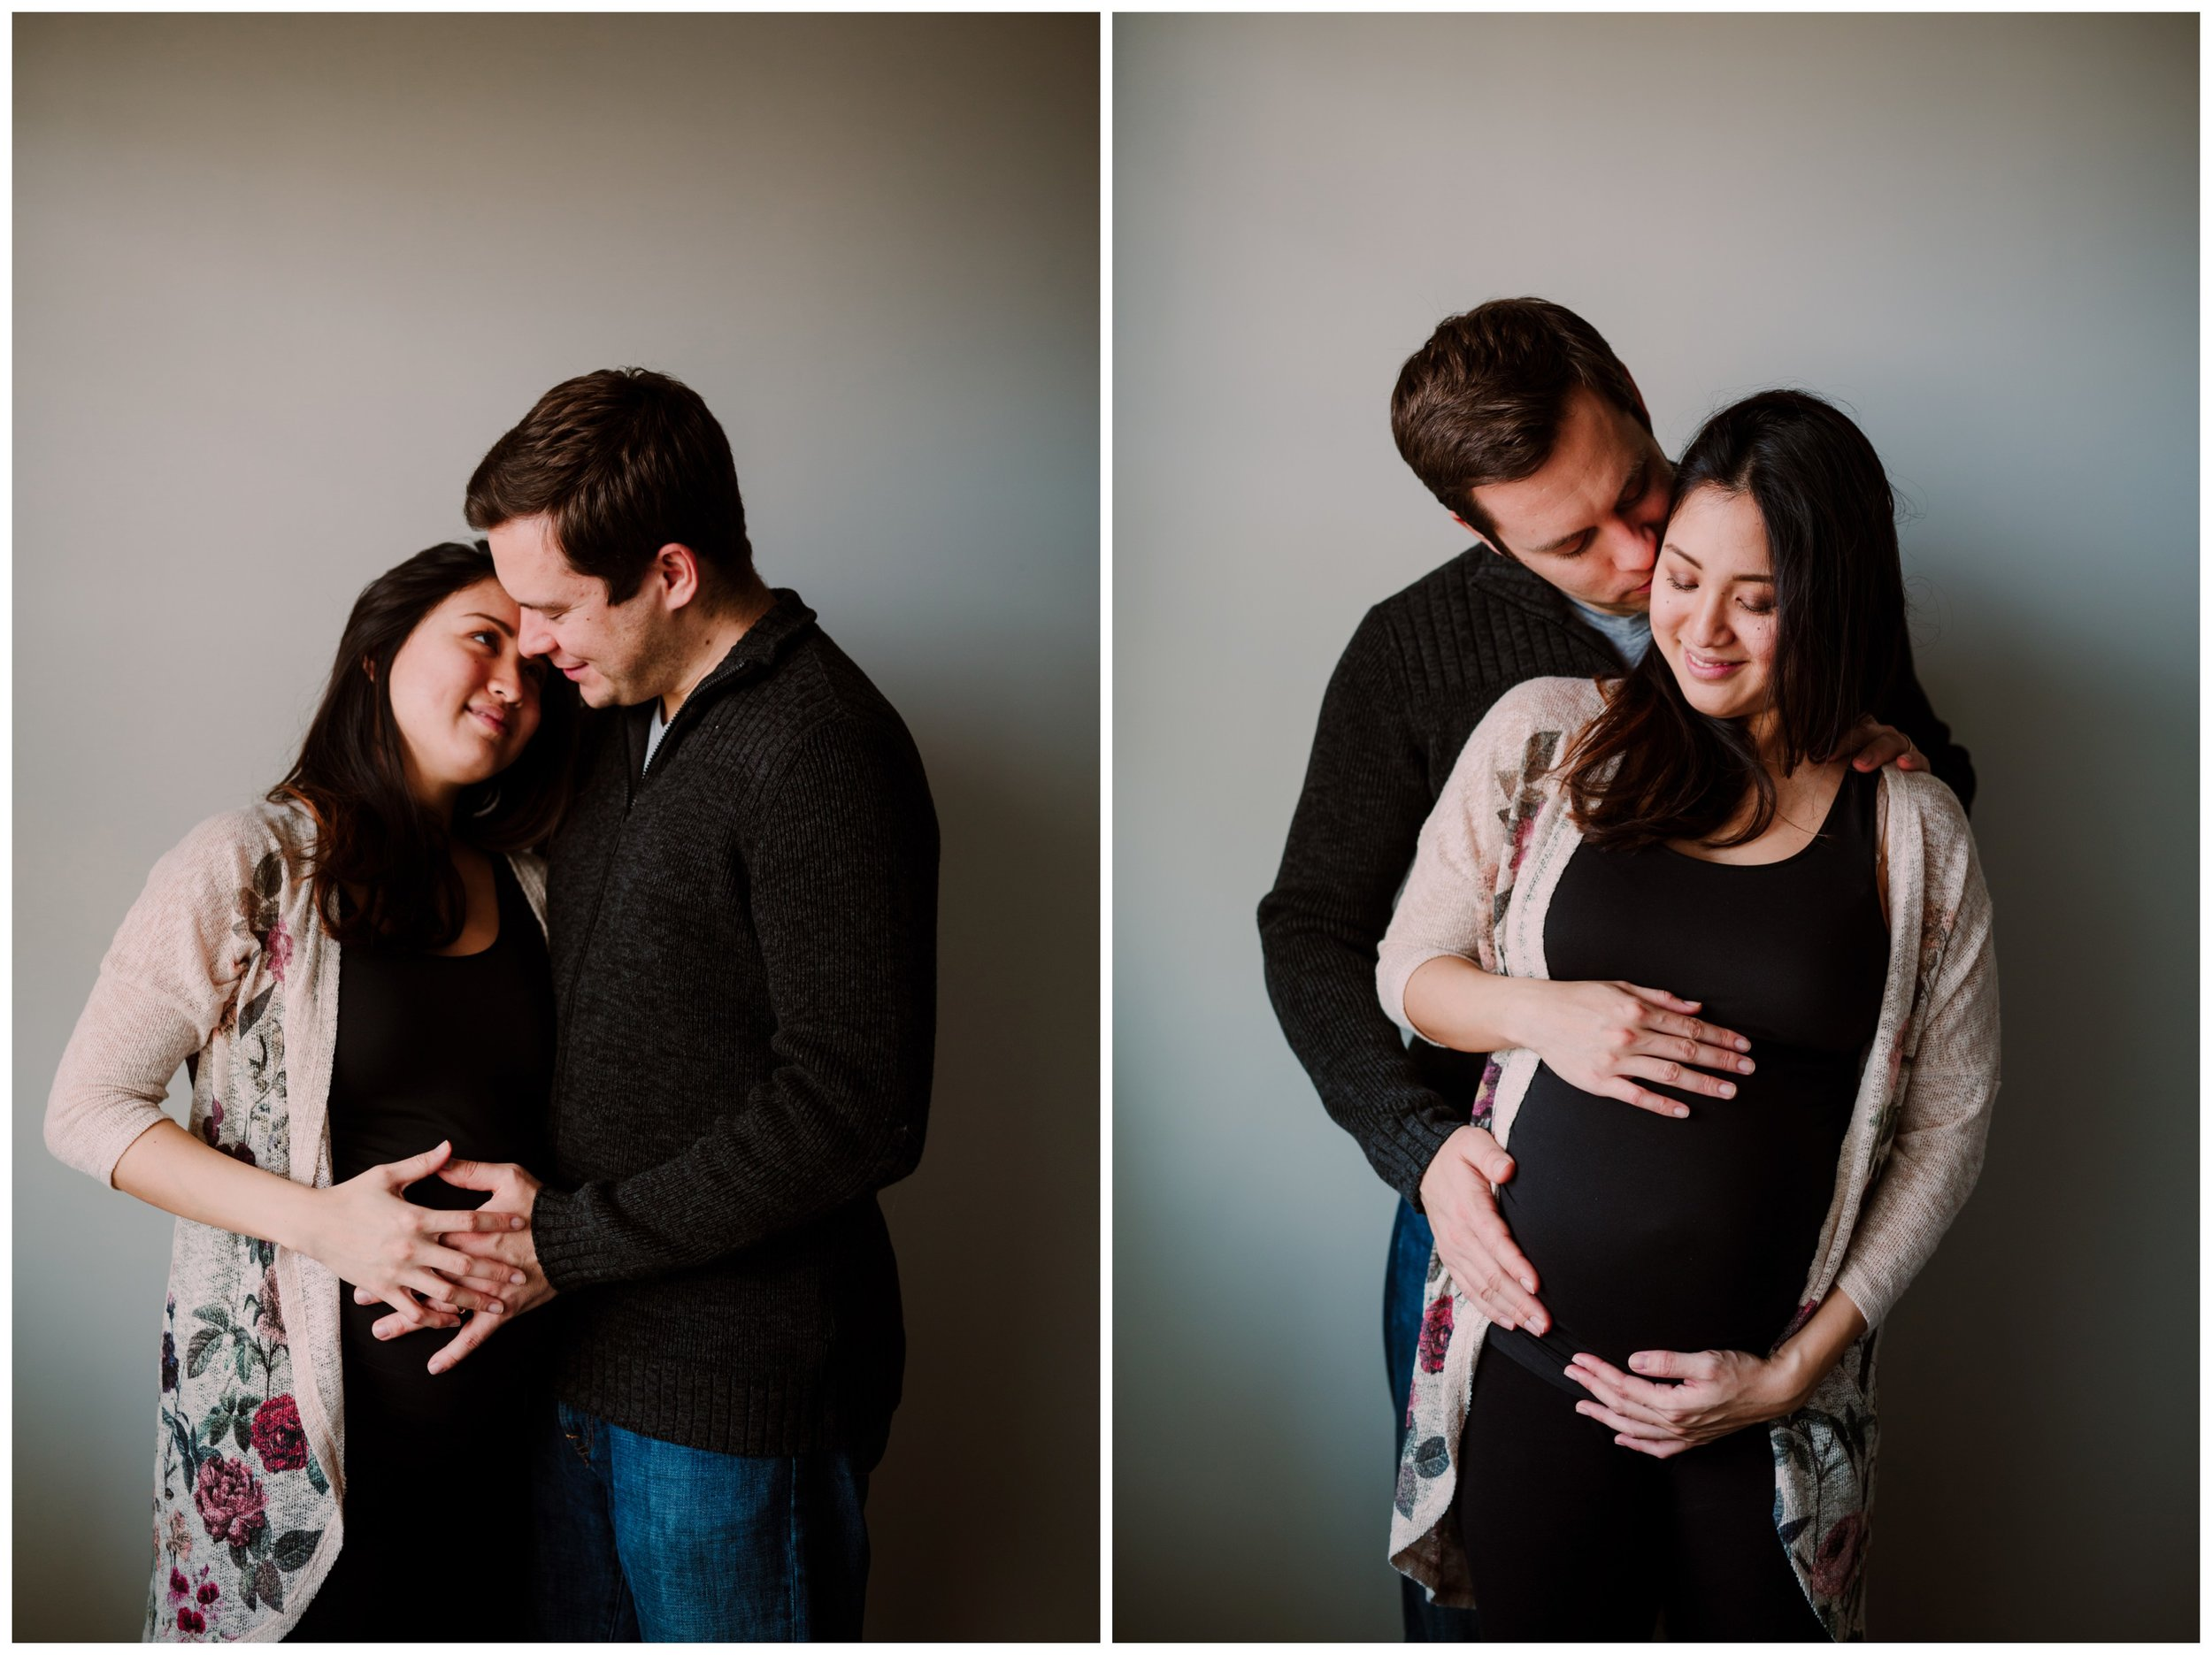 Jasmin & Mark's Philadelphia In-Home Maternity Session | Philadelphia Maternity Photographer-88.jpg